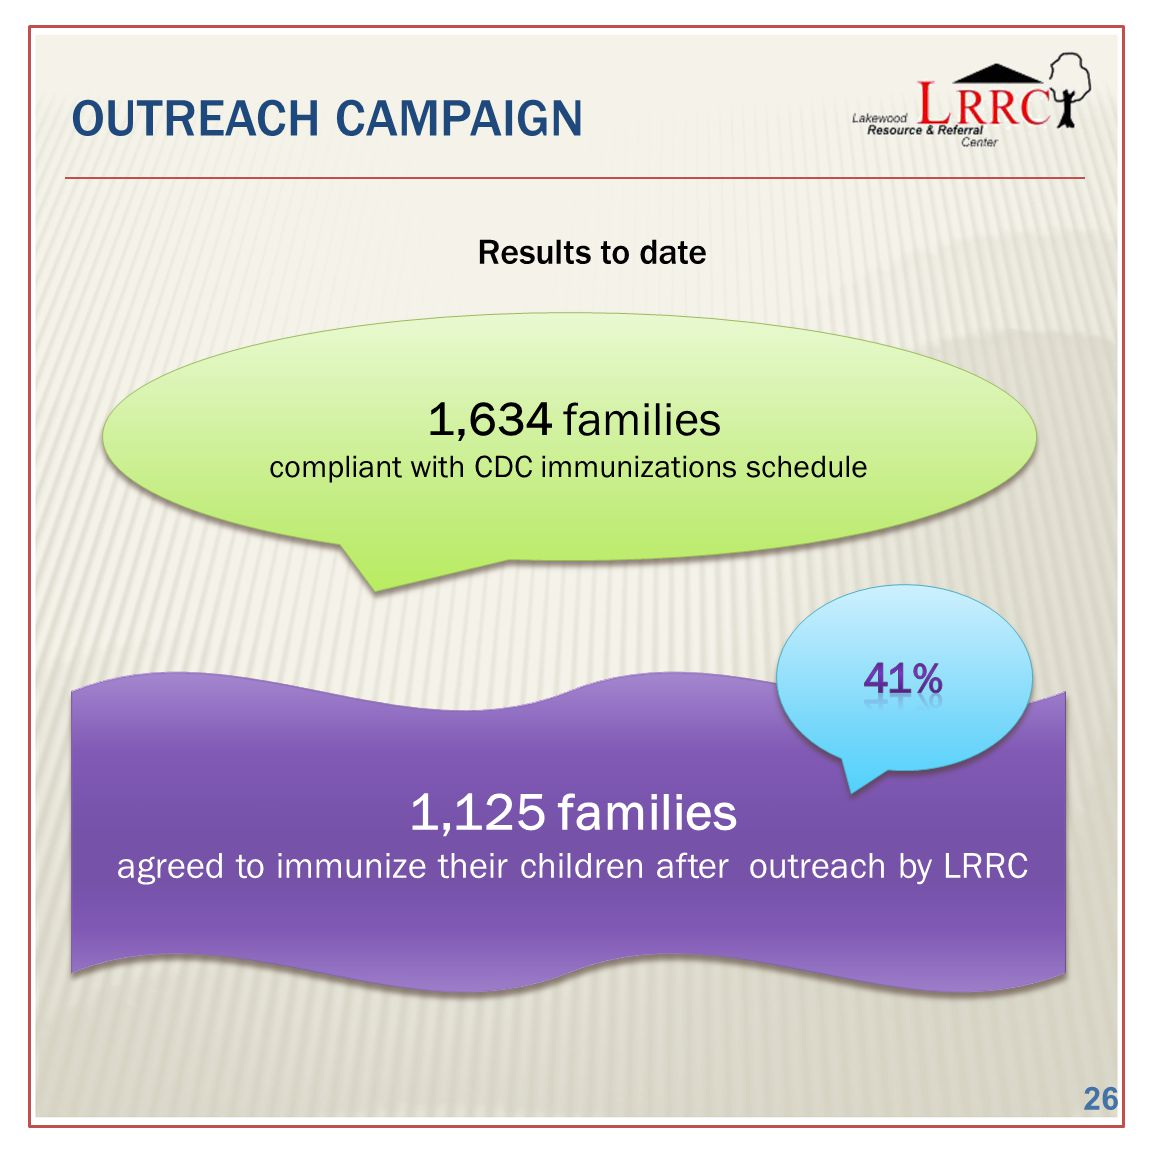 OUTREACH CAMPAIGN Results to date 1,634 families compliant with CDC immunizations schedule 1,634 families compliant with CDC immunizations schedule 1,125 families agreed to immunize their children after outreach by LRRC 1,125 families agreed to immunize their children after outreach by LRRC 26